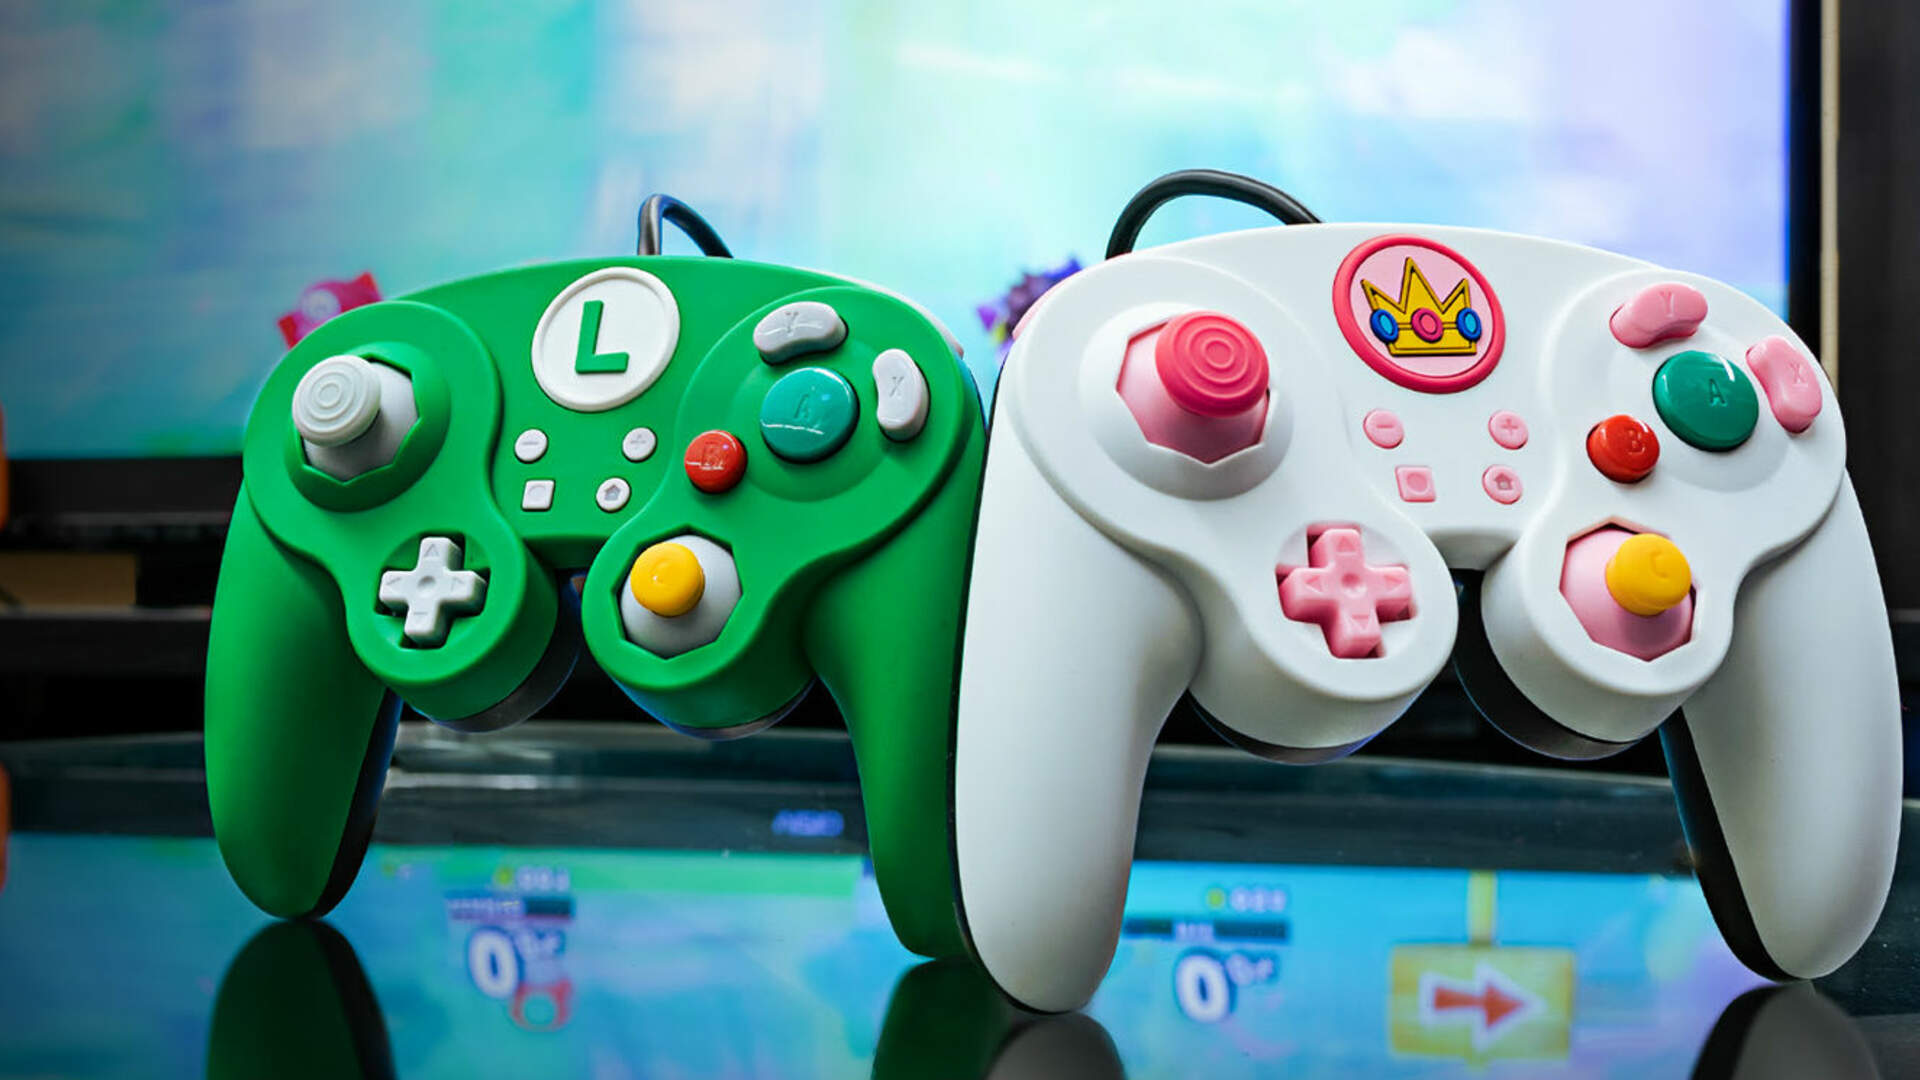 Here Are Some Fun Mario-Themed Super Smash Bros. Controllers